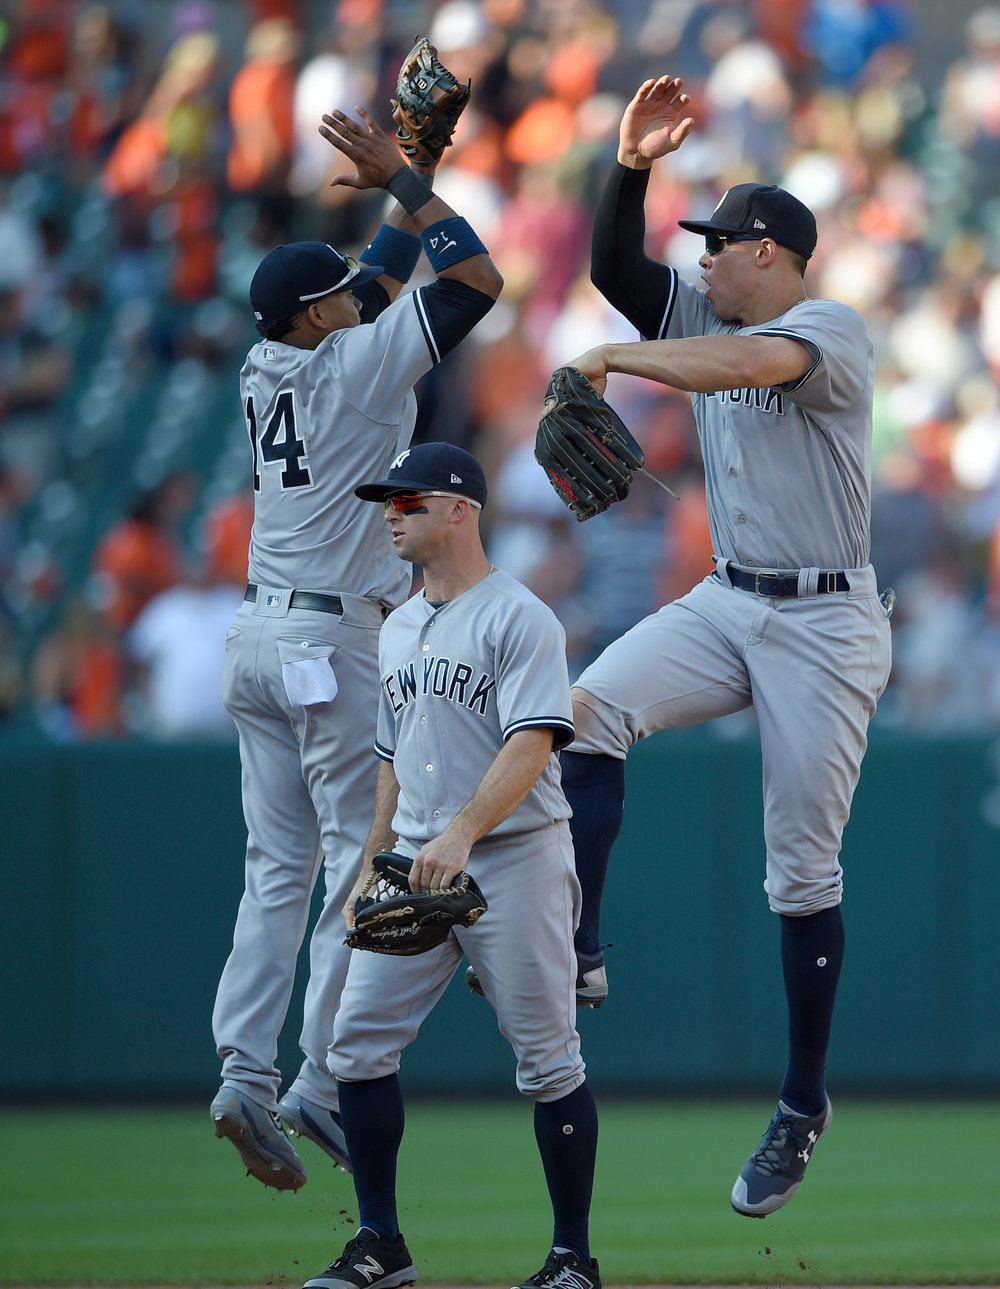 New York Yankees' Starlin Castro (14), Aaron Judge, right, and Brett Gardner, center, celebrate after a baseball game against the Baltimore Orioles, Monday, Sept. 4, 2017, in Baltimore. The Yankees won 7-4. (AP Photo/Nick Wass)